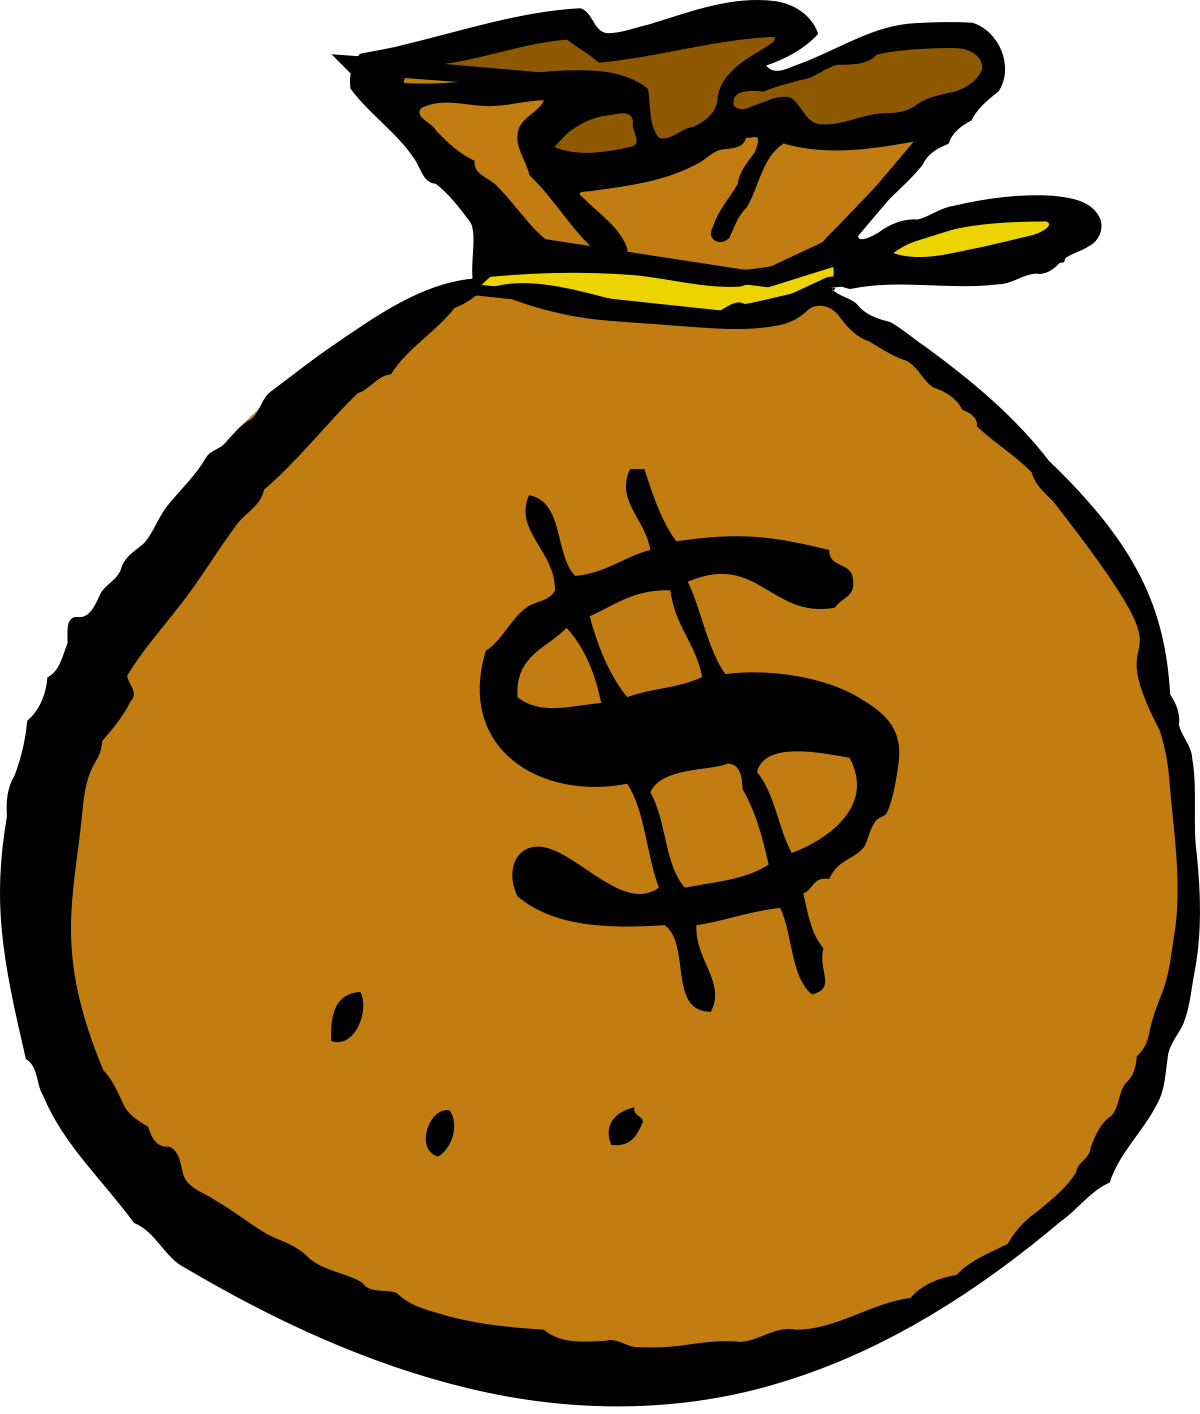 Bag images group wiktionary. Coin clipart money australian